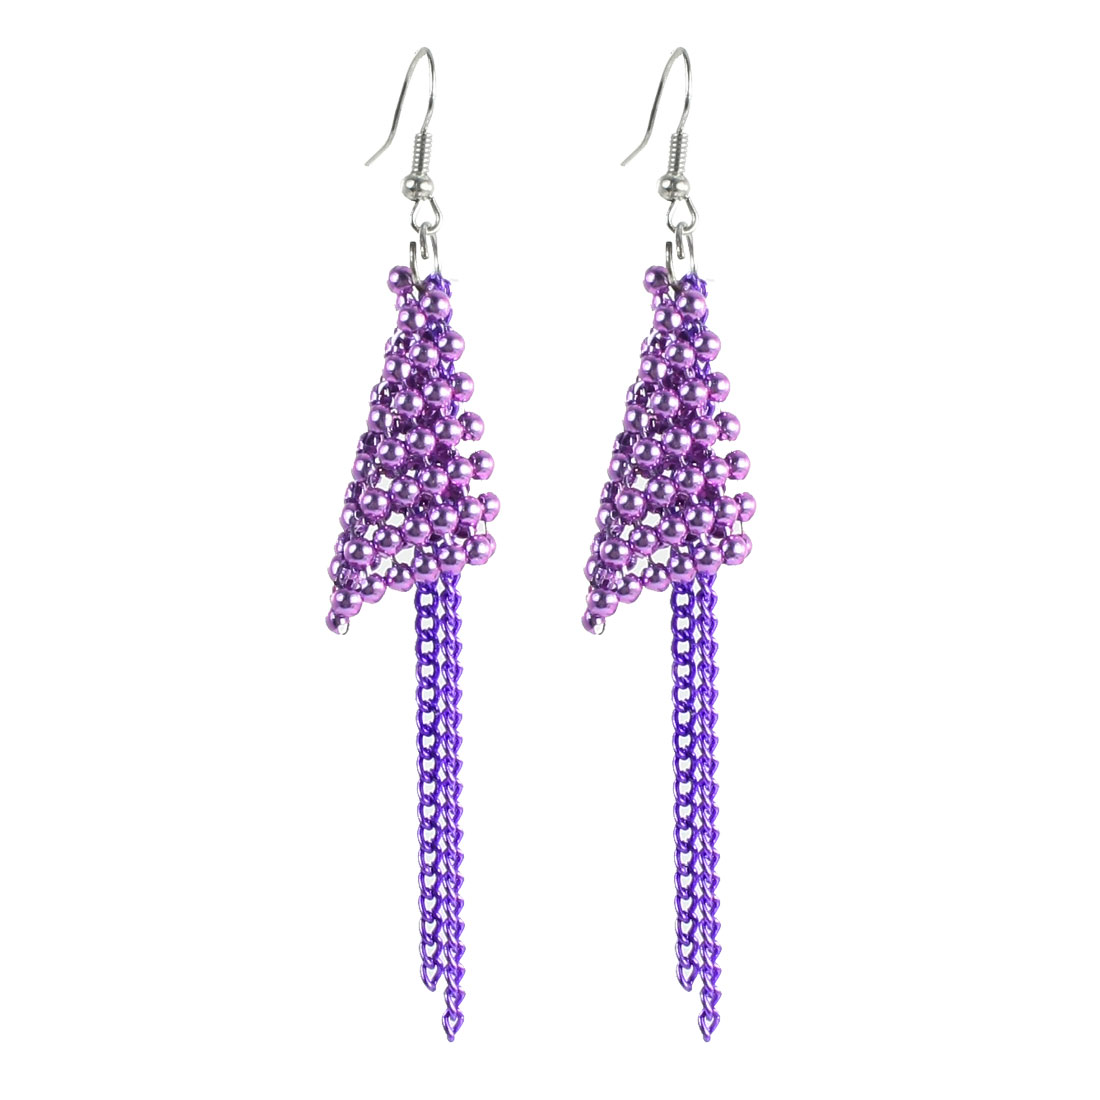 Pair Ear Ornament Purple Chain Detailing Beads Rhombus Hook Earrings